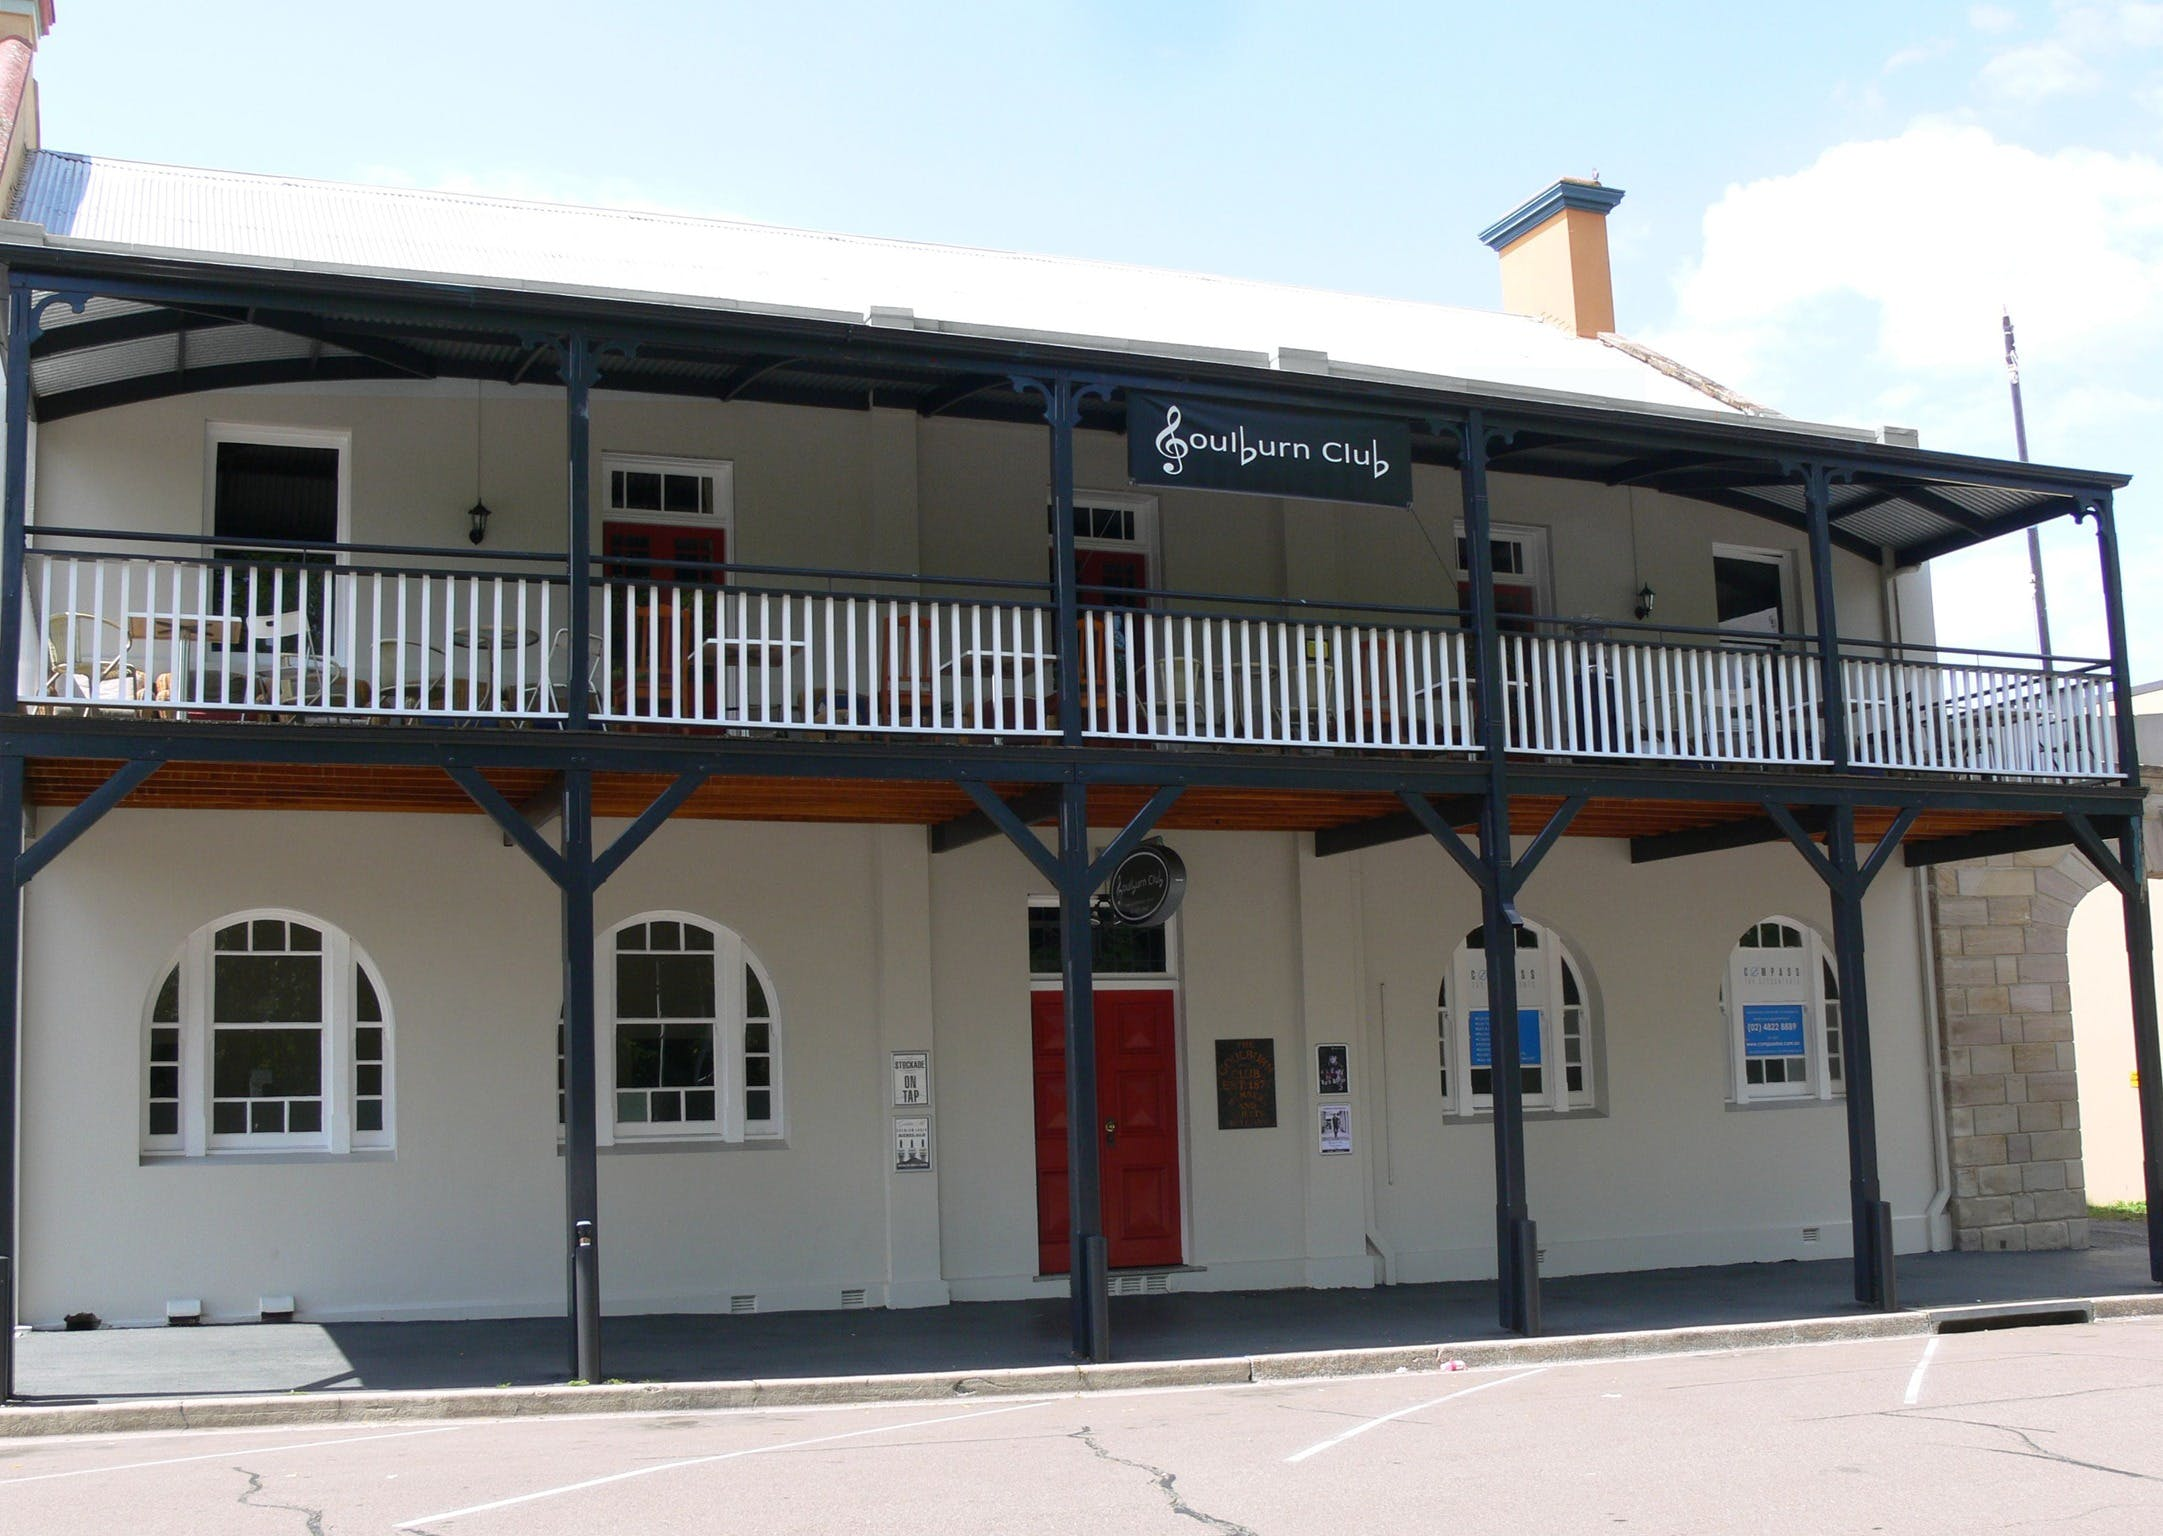 Open Mic Night at the Goulburn Club - Accommodation Adelaide